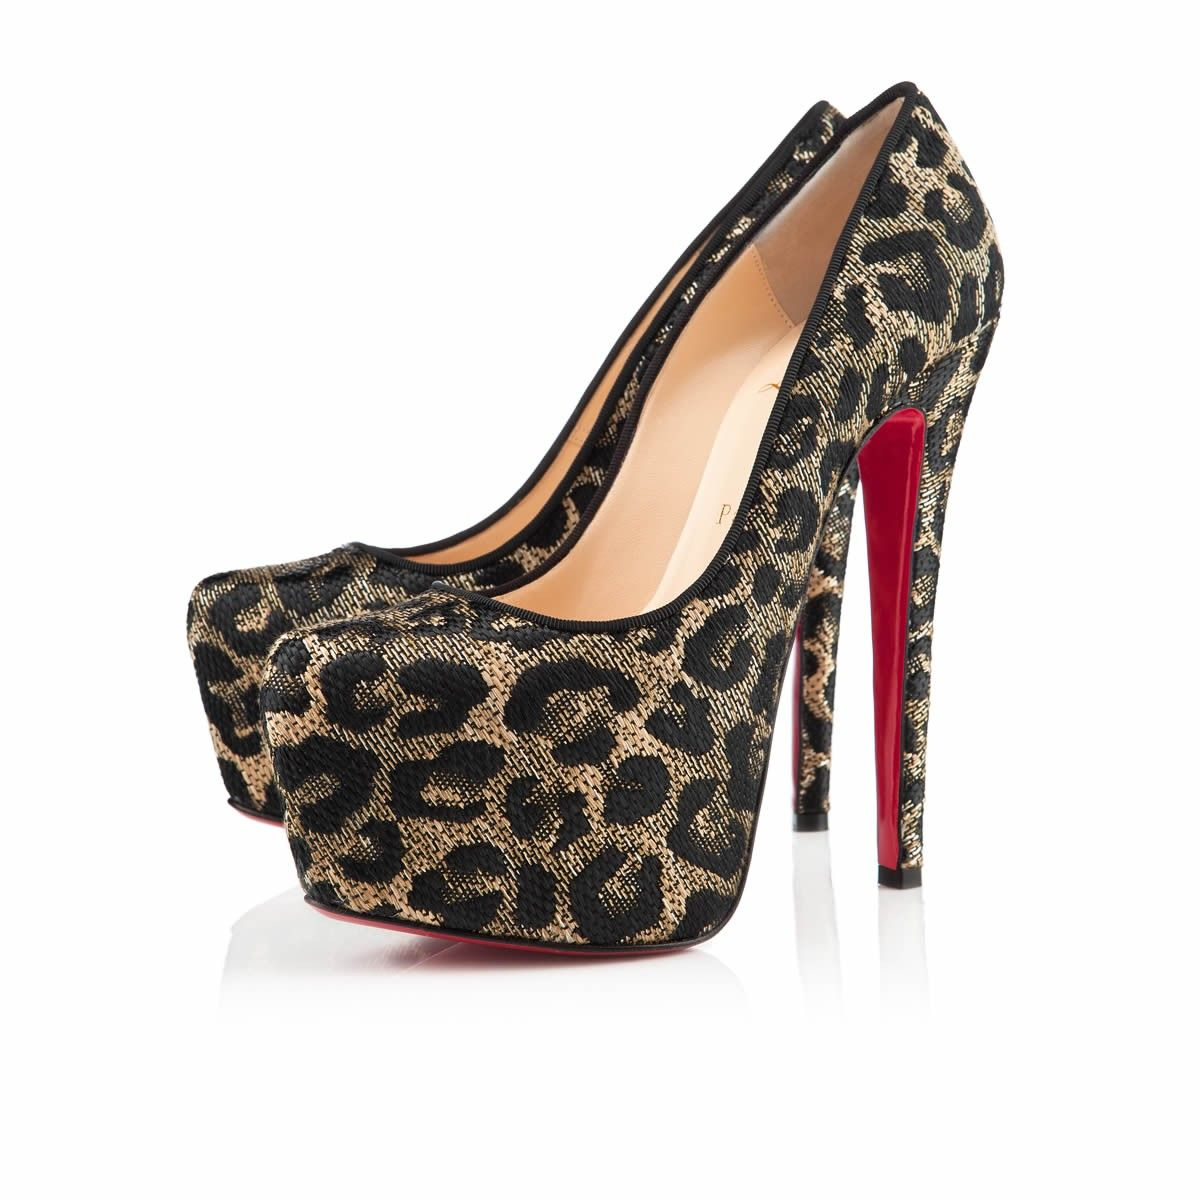 DAFFODILE JACQUARD LEOPARD 160 mm, Panama, Black, Women Shoes. Christian  Louboutin ...